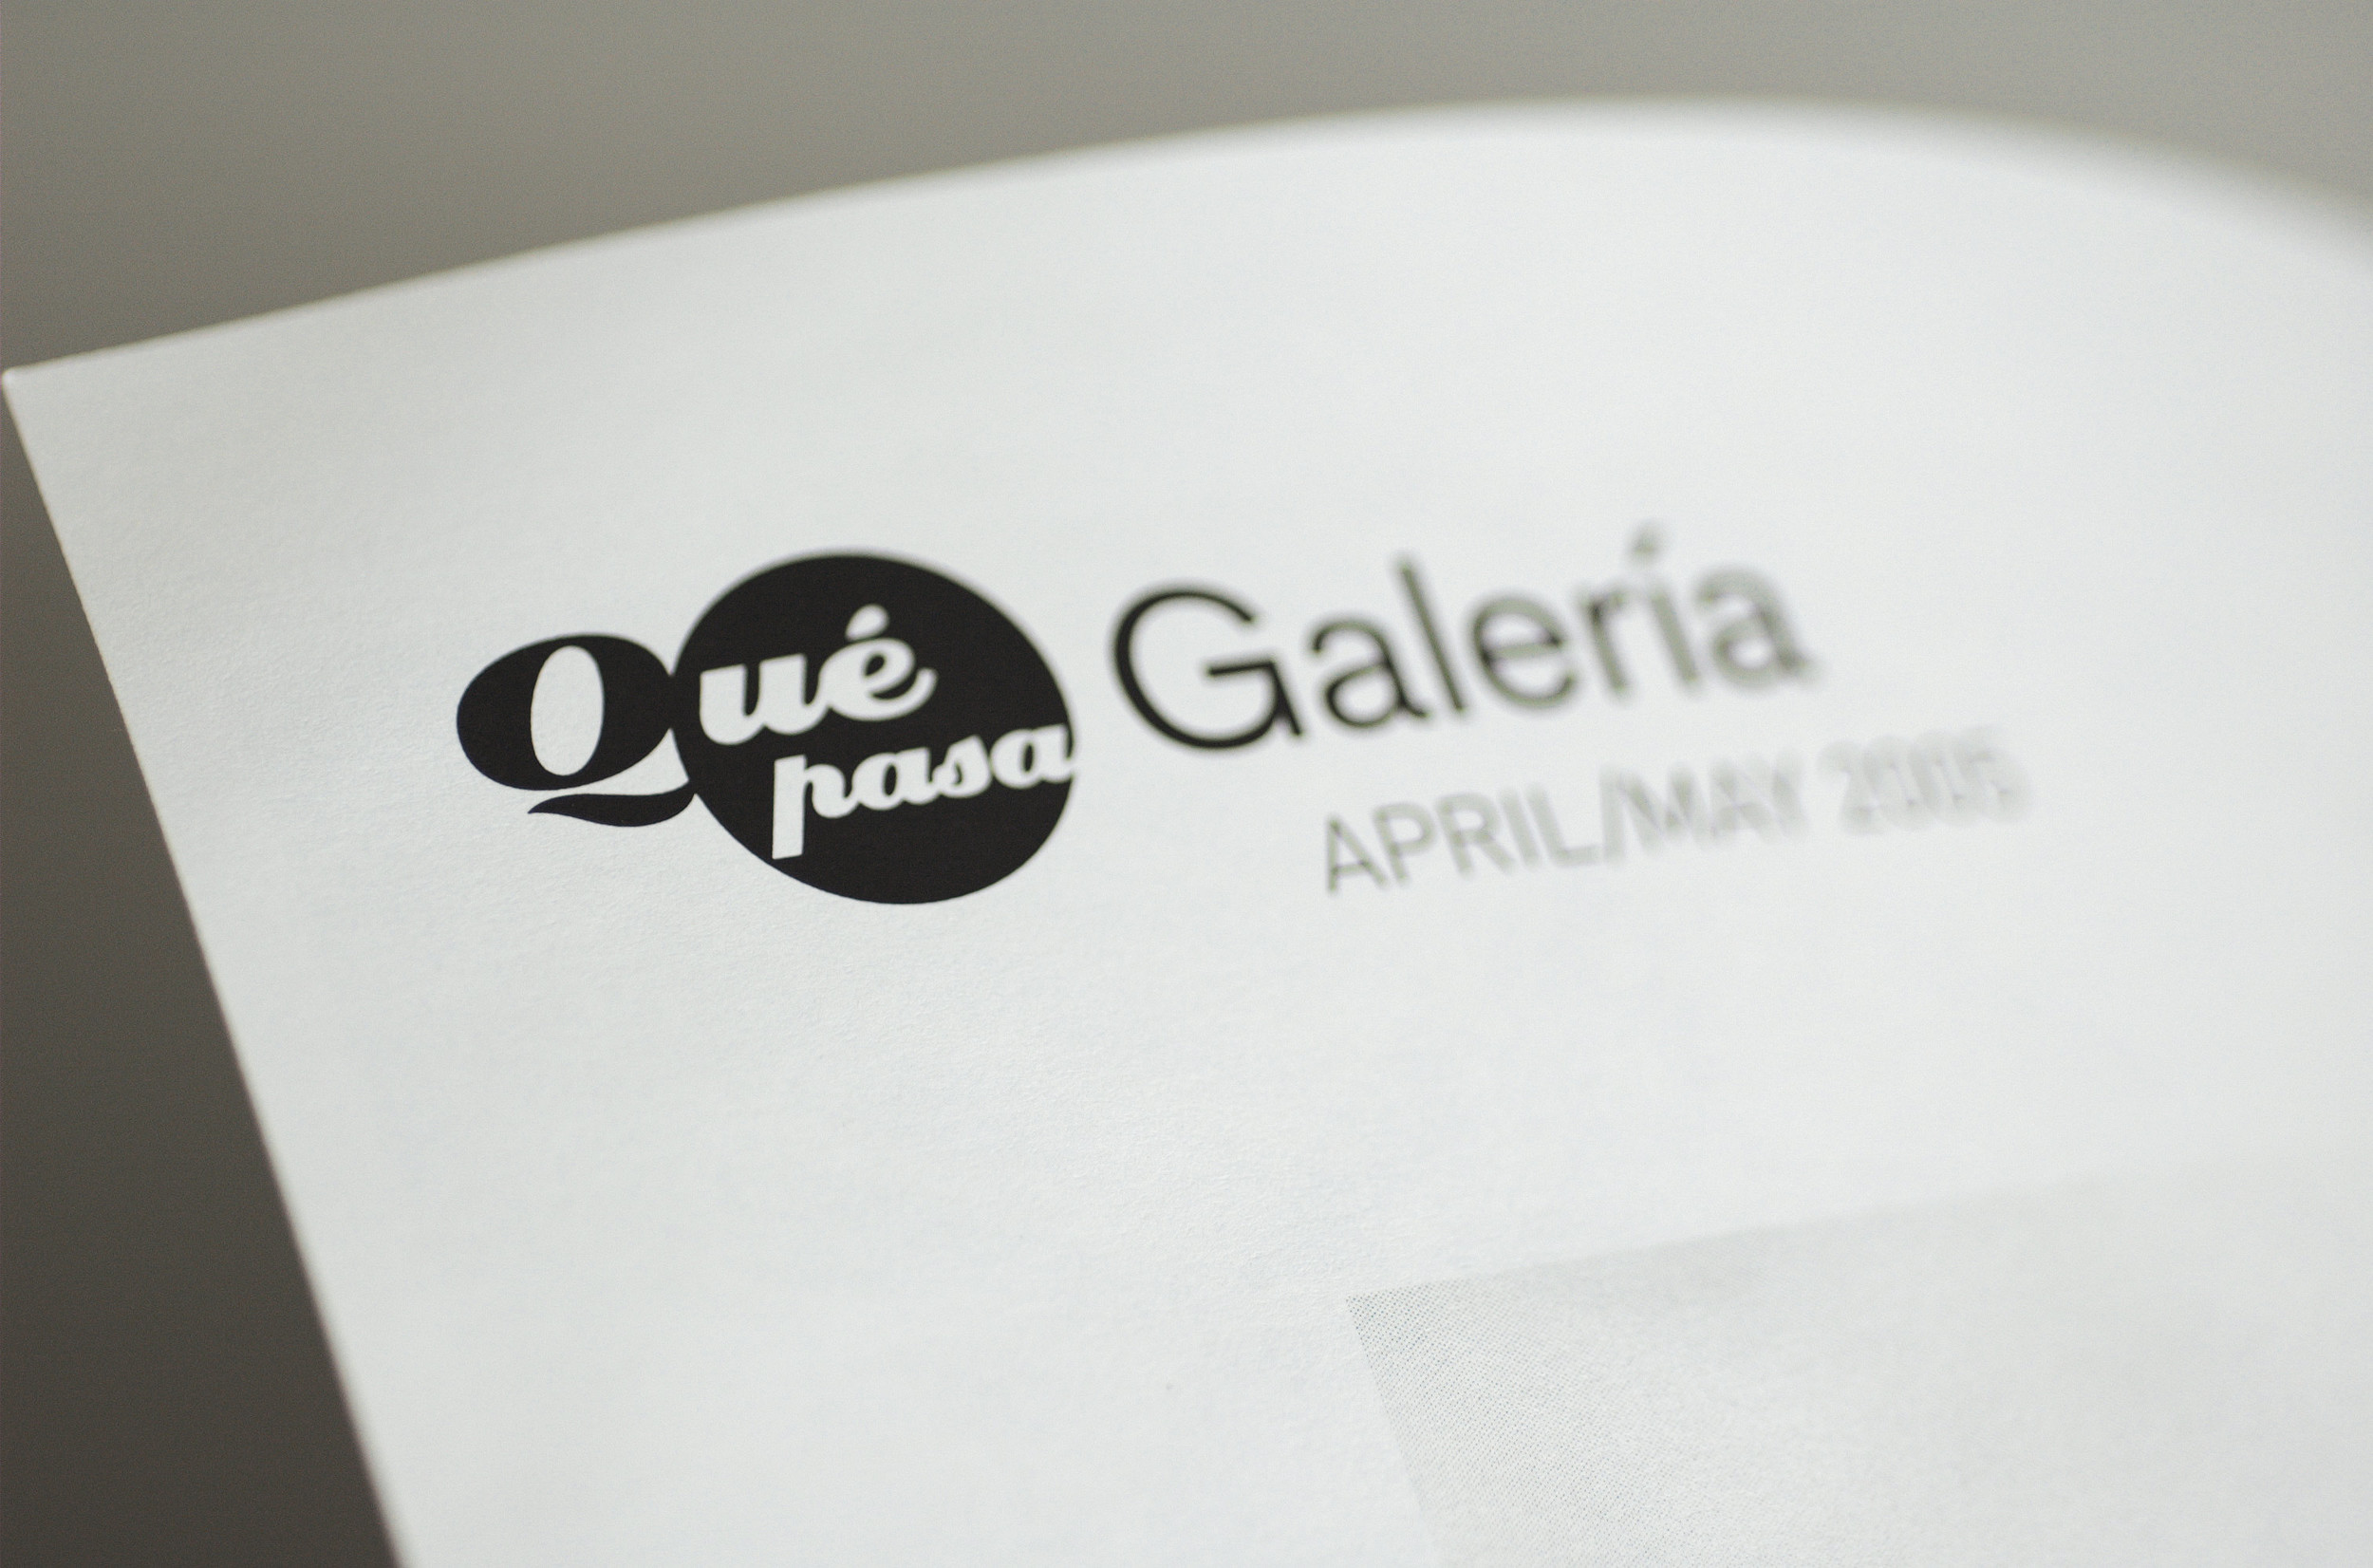 Galeria_NewsLetter_Detail1.jpg